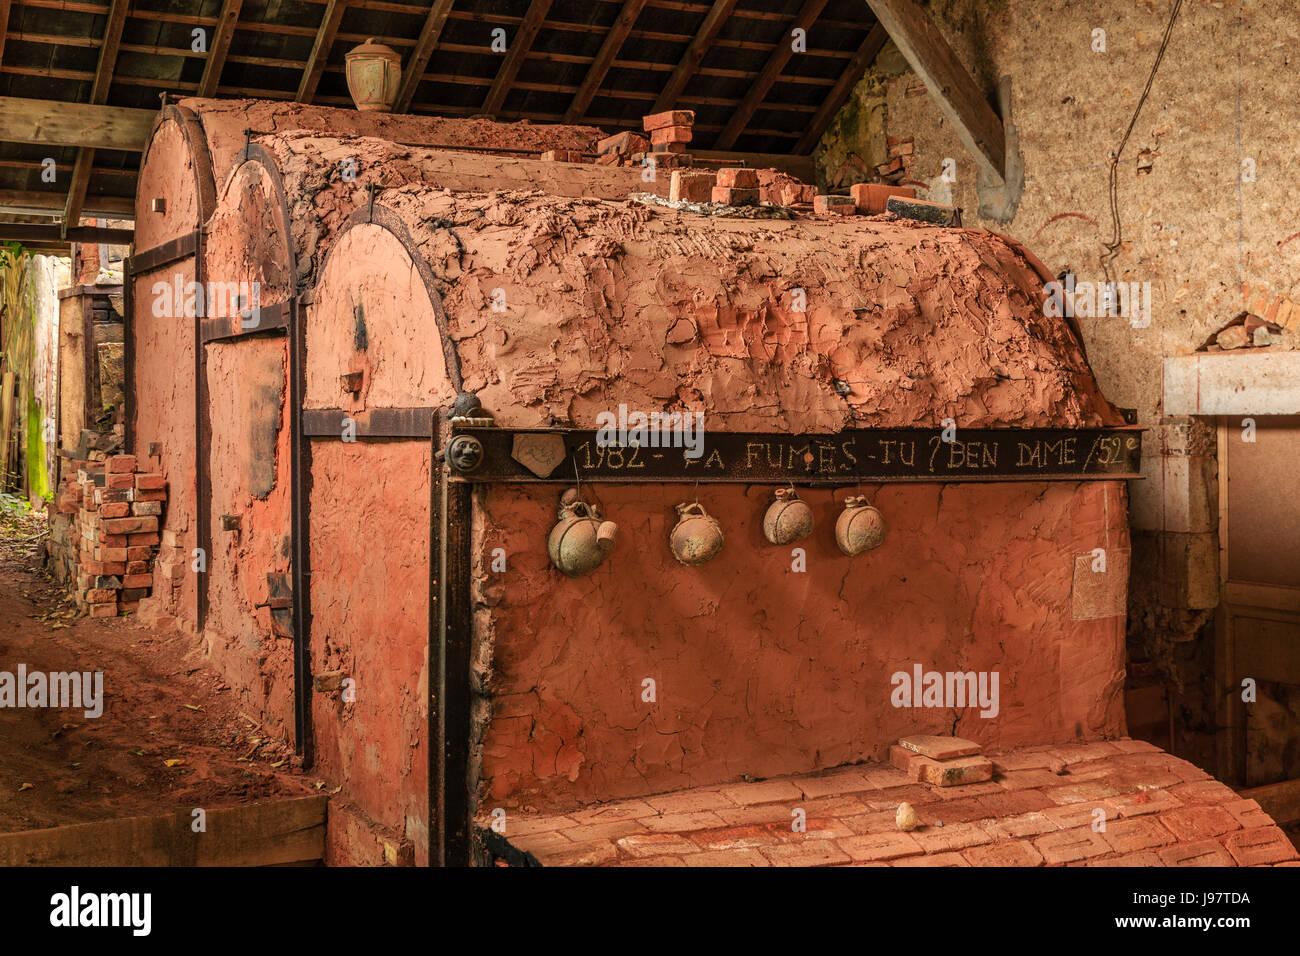 ceramic kiln stock photos ceramic kiln stock images alamy. Black Bedroom Furniture Sets. Home Design Ideas